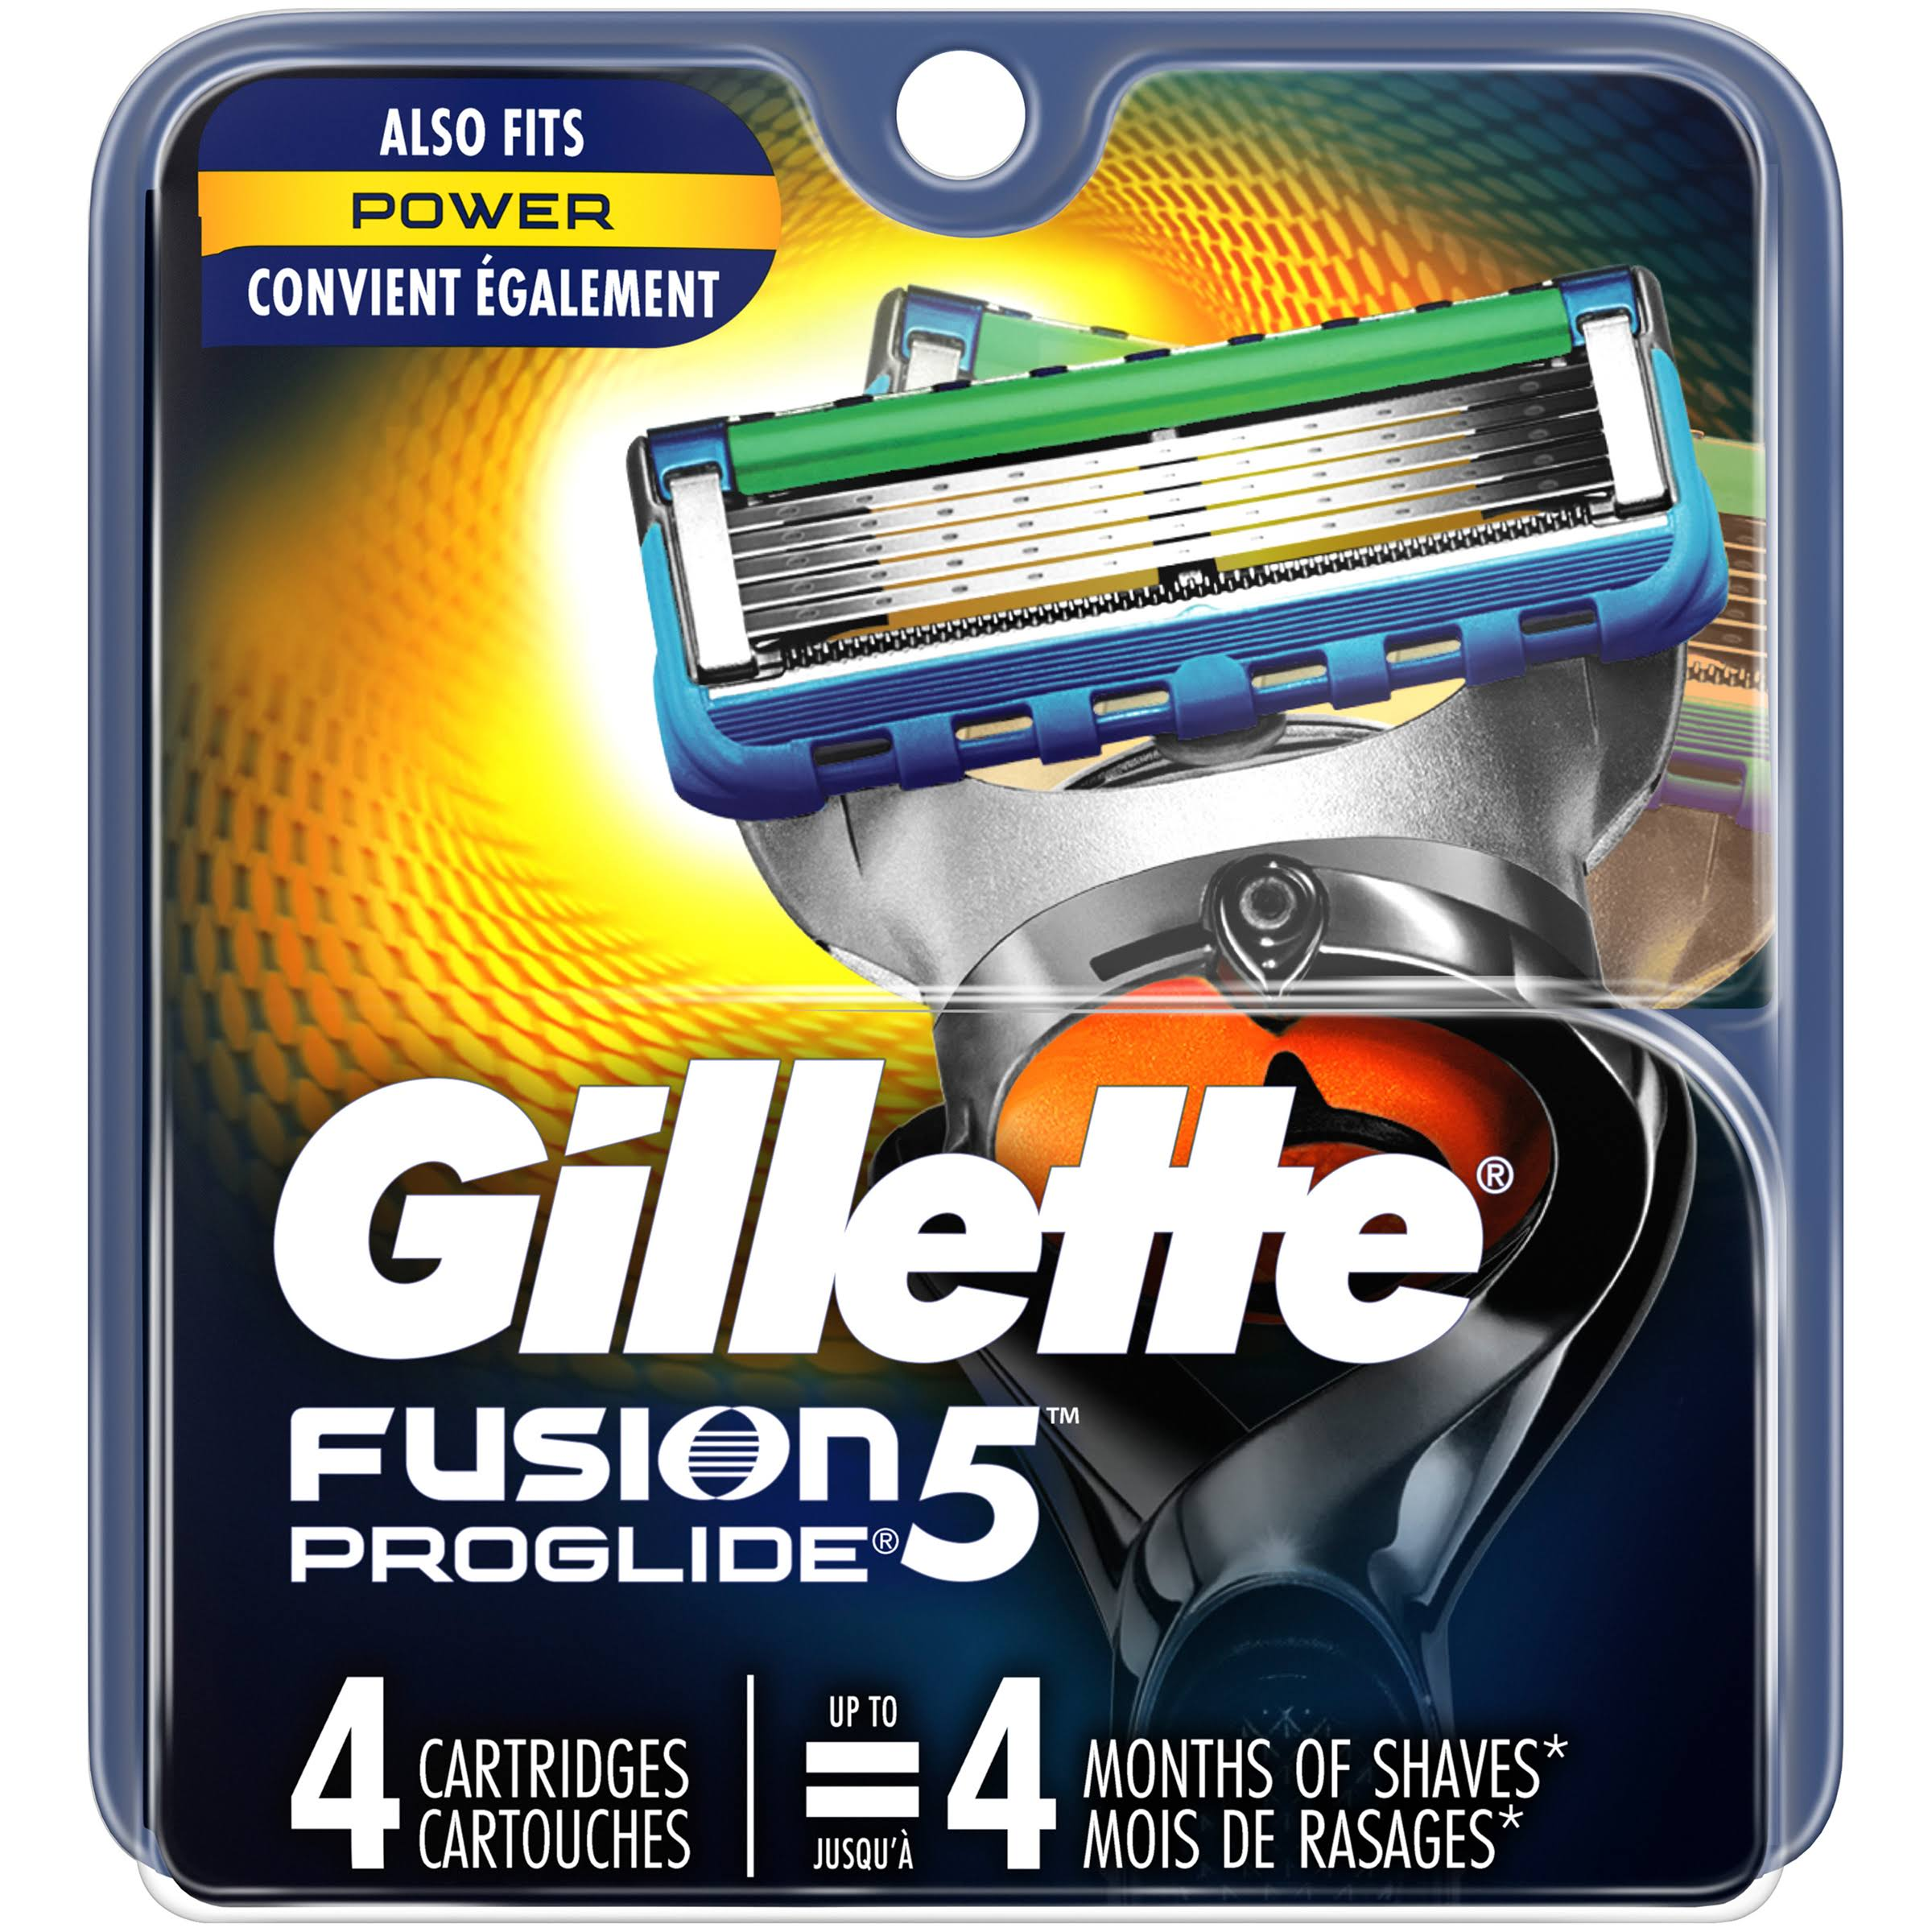 Gillette Fusion Proglide Power Cartridges - 4 Pack